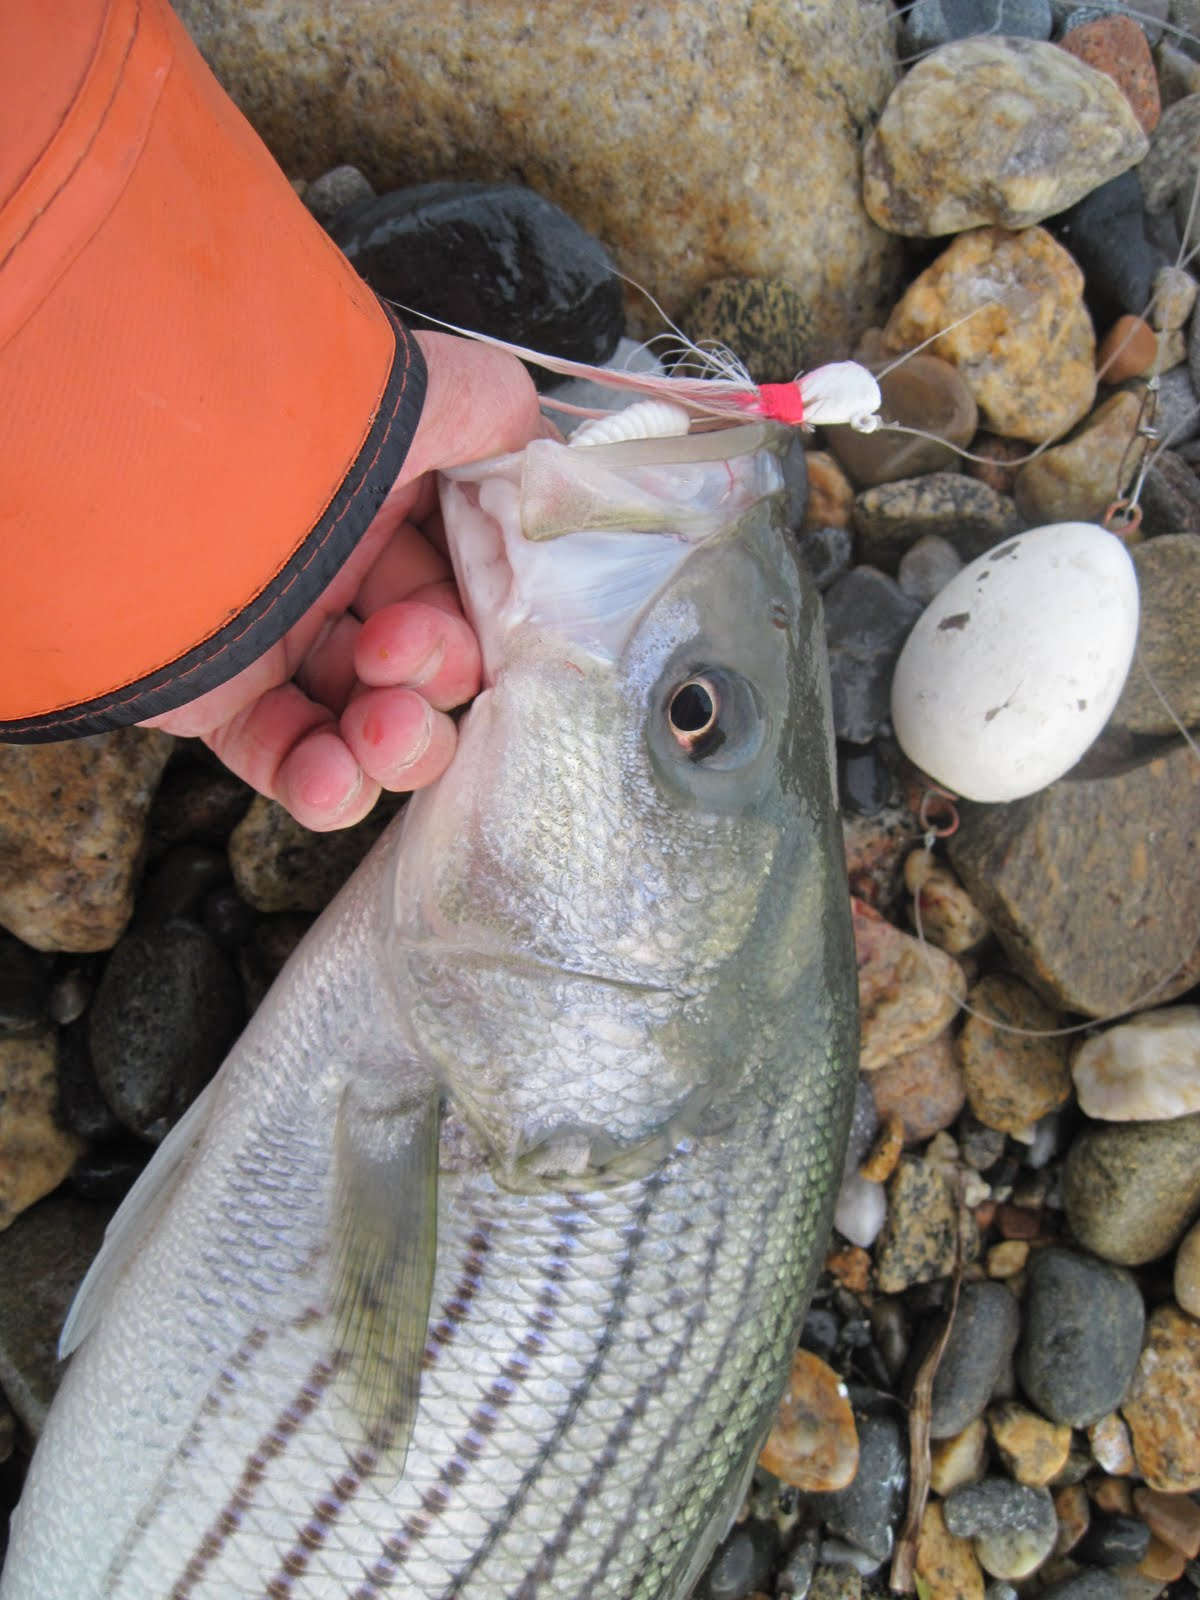 Rhode island striped bass float n jig scoring in white water it also works along shallow beaches nvjuhfo Image collections